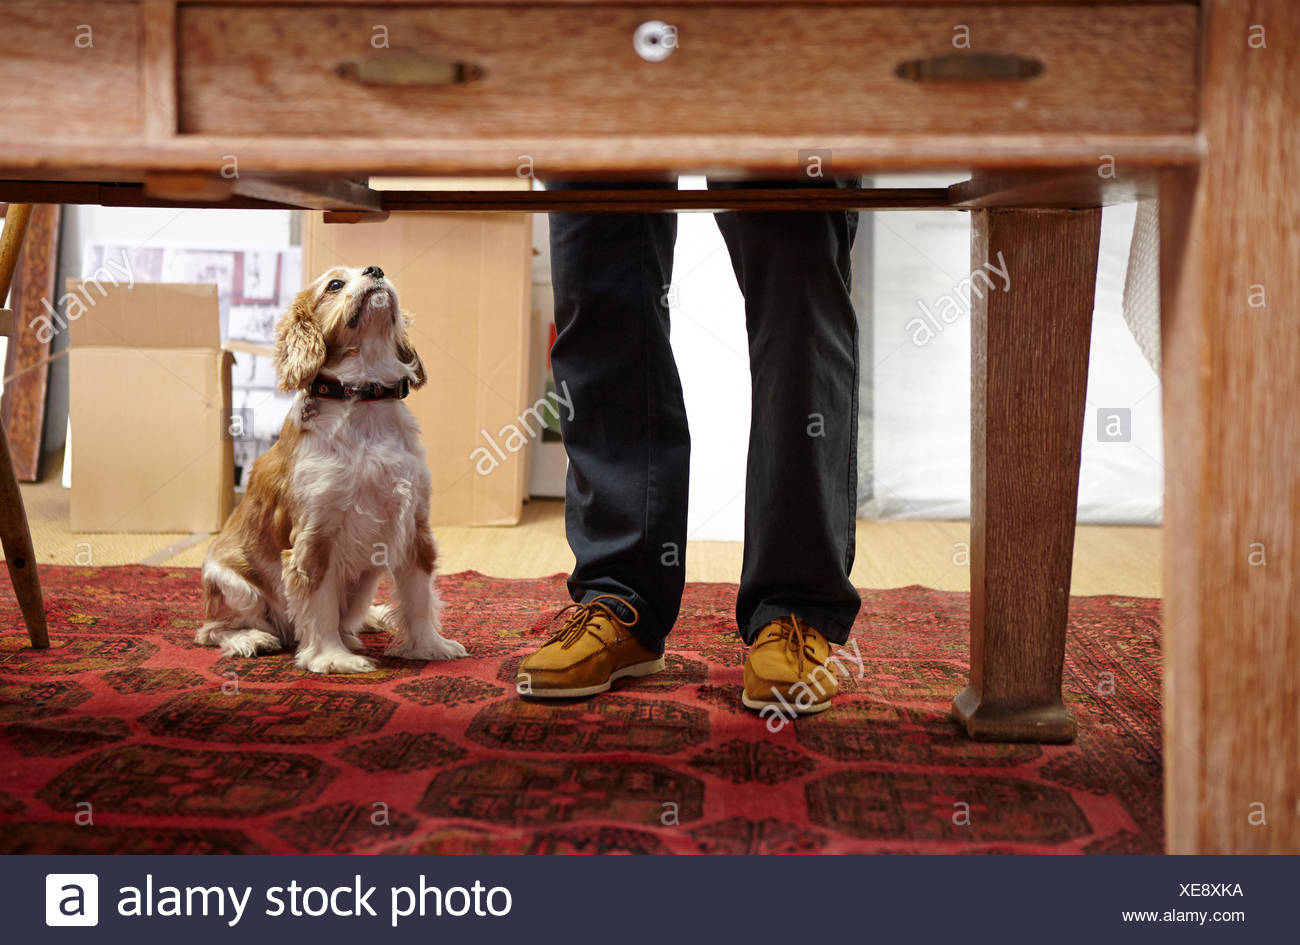 Mans legs and dog looking up in picture framers workshop - Stock Image